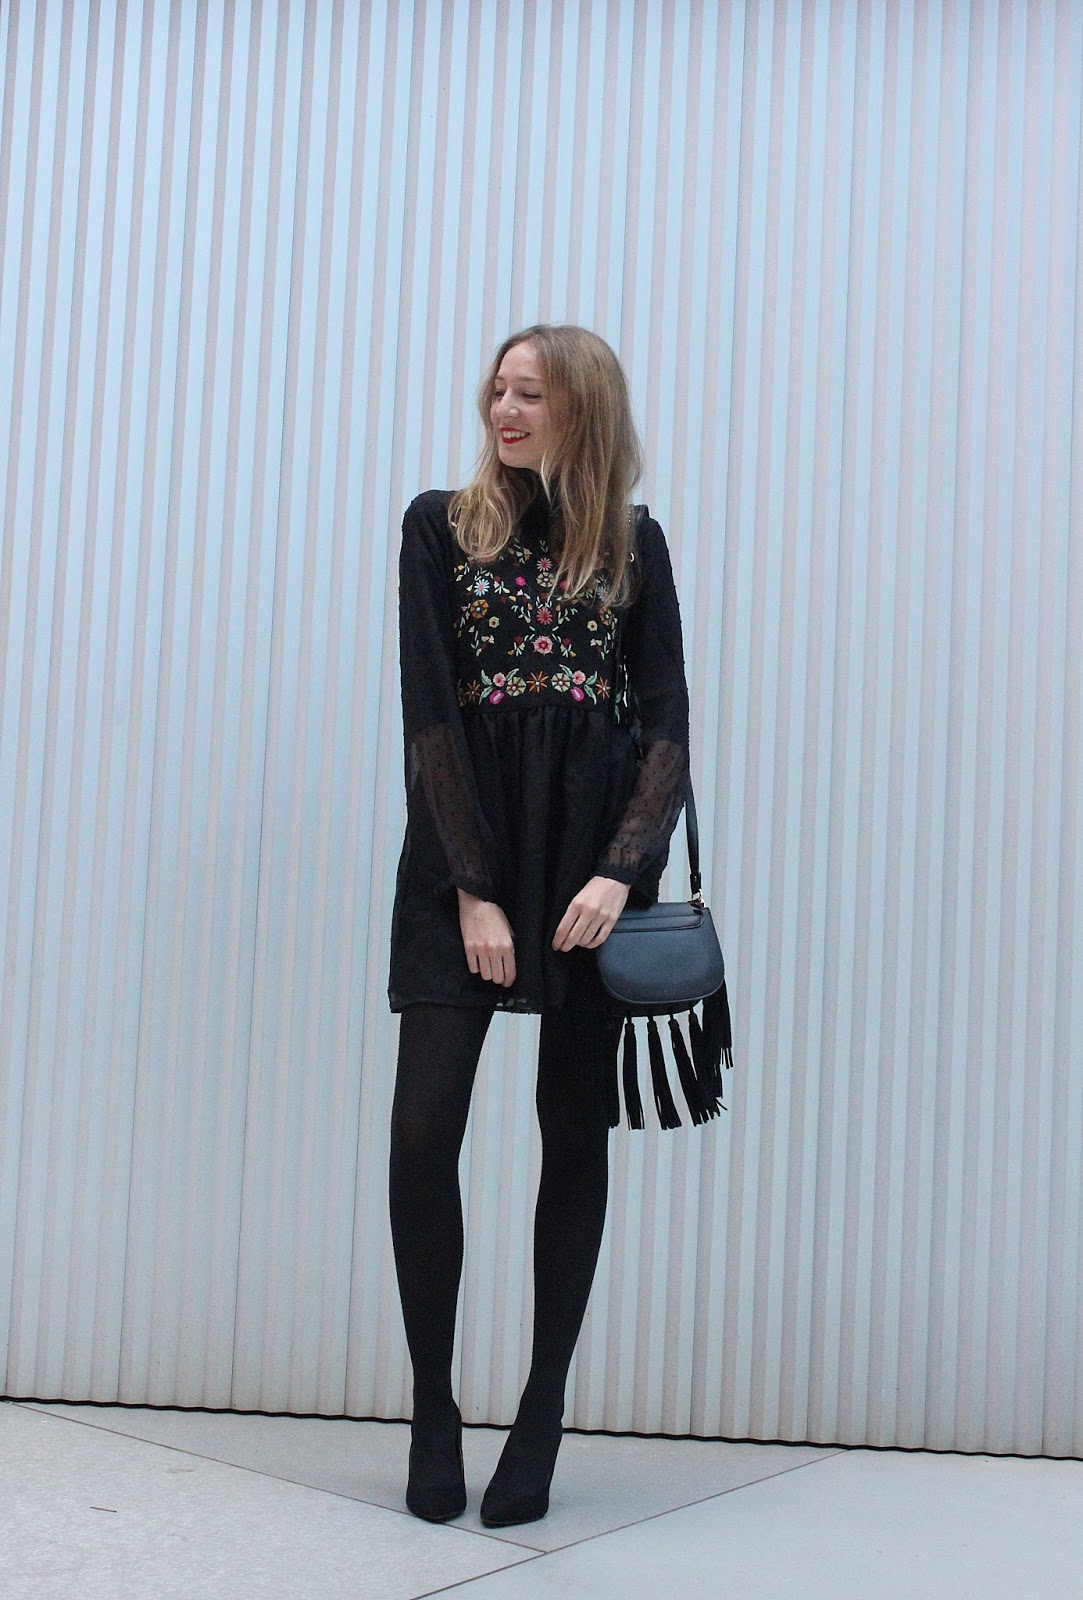 little-black-dress-street-style-shein